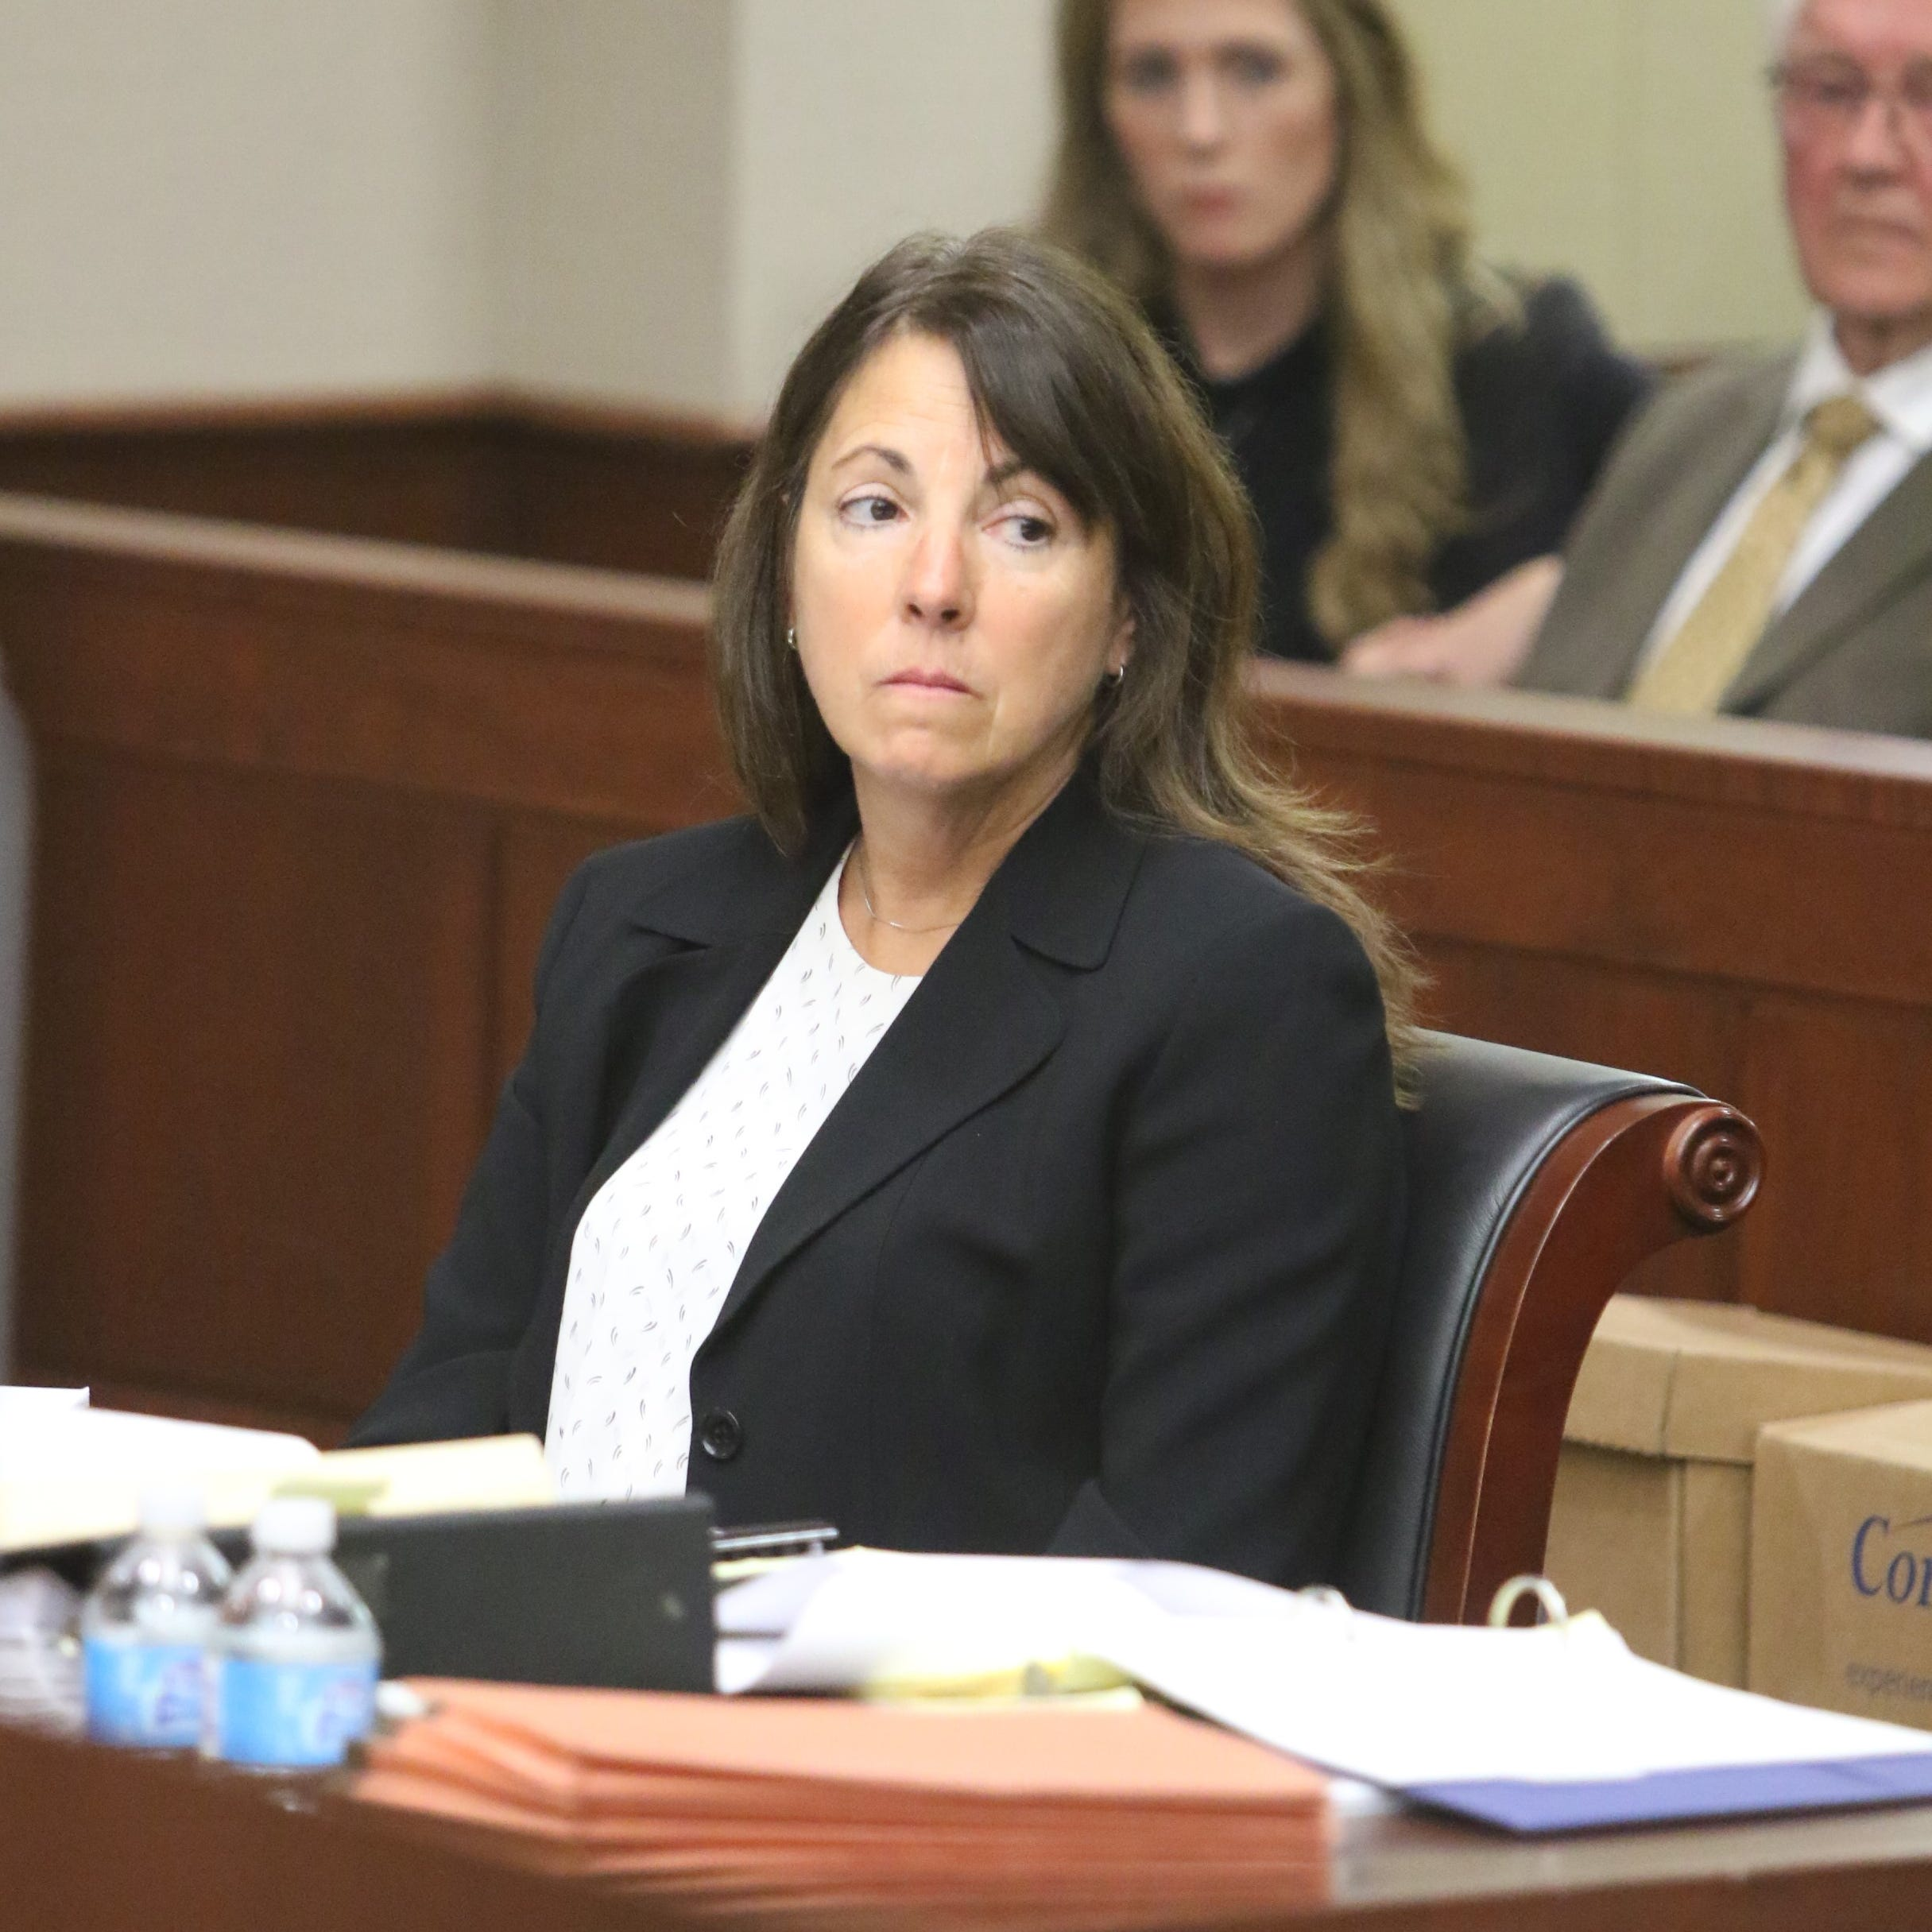 Livingston County Judge Theresa Brennan waits for the Judicial Tenure Commission hearing to begin Monday, Oct. 1, 2018.